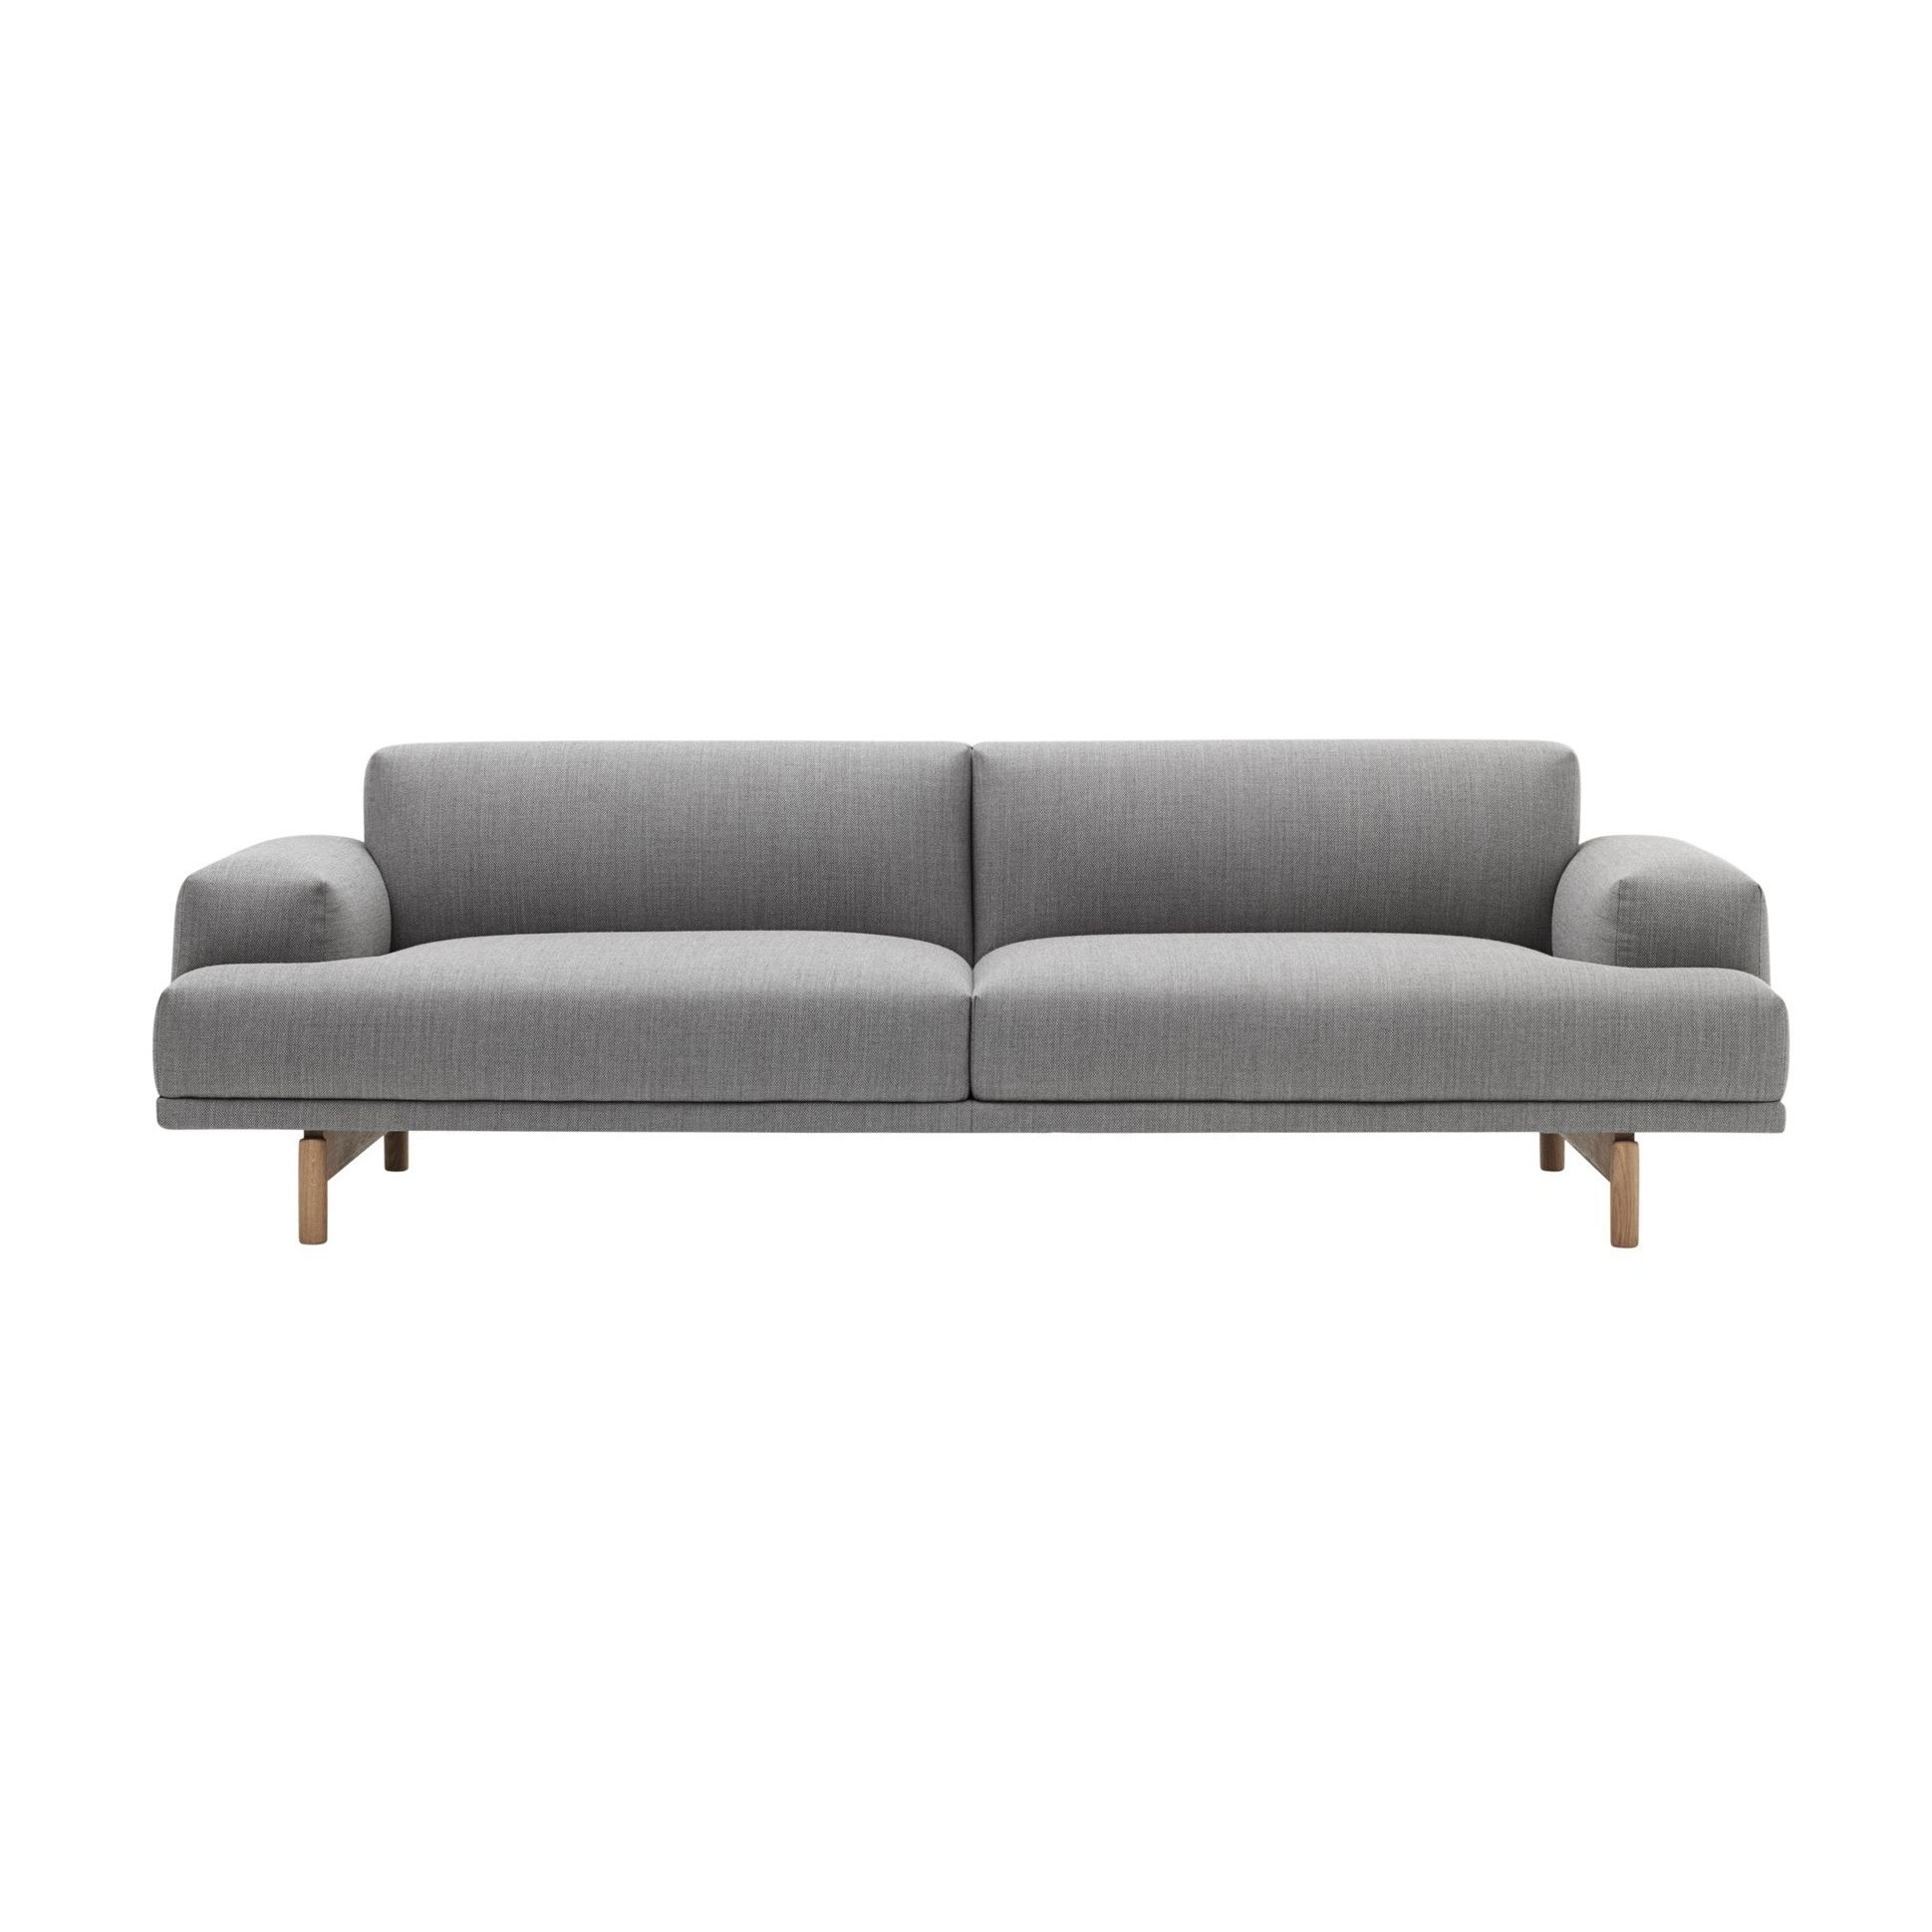 Muuto Compose 3 Seater Sofa Grey Fabric Vancouver